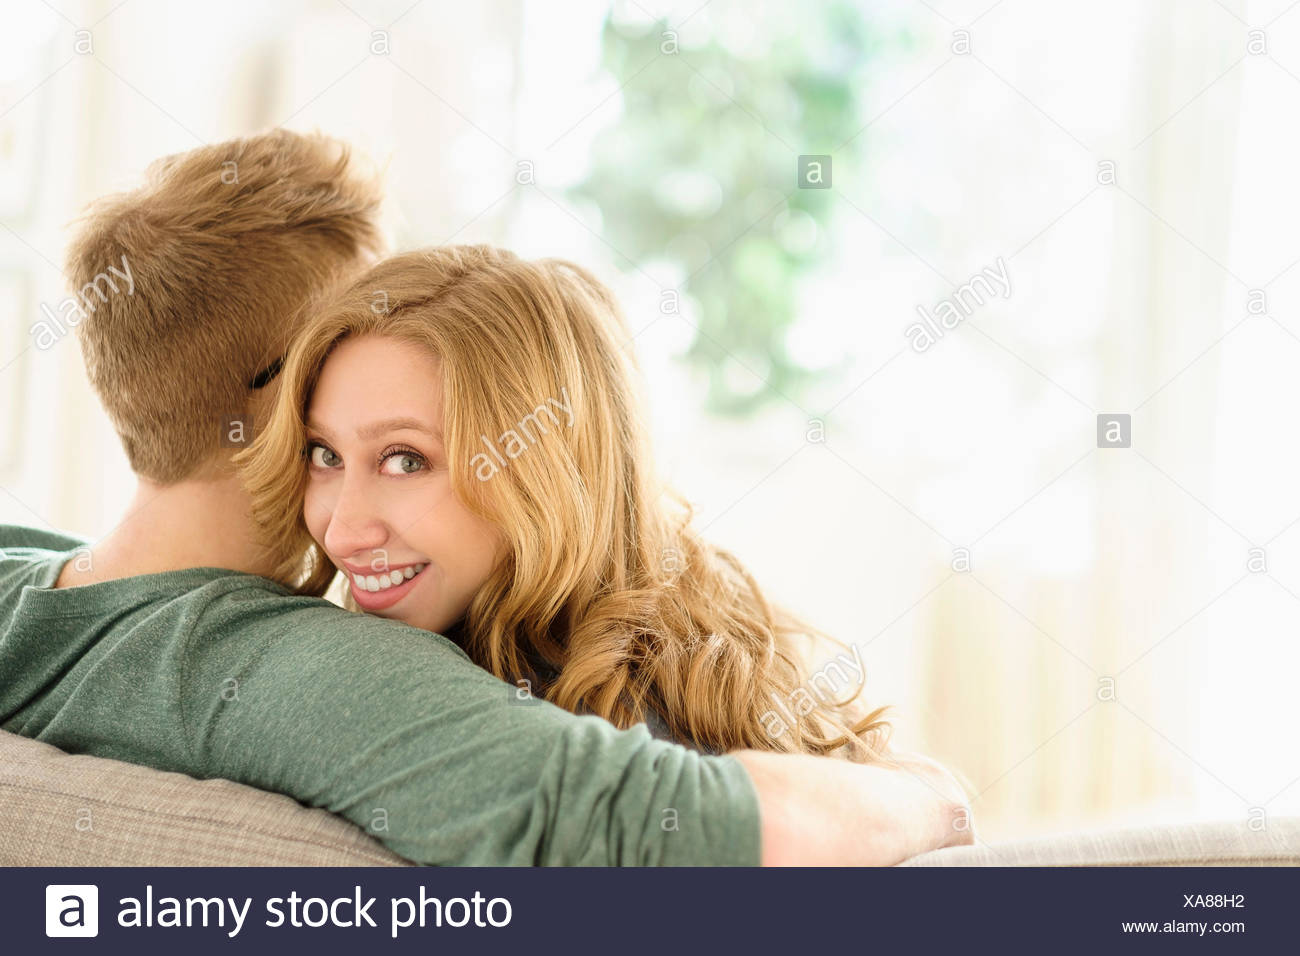 Portrait of young woman hugging boyfriend sur canapé Photo Stock